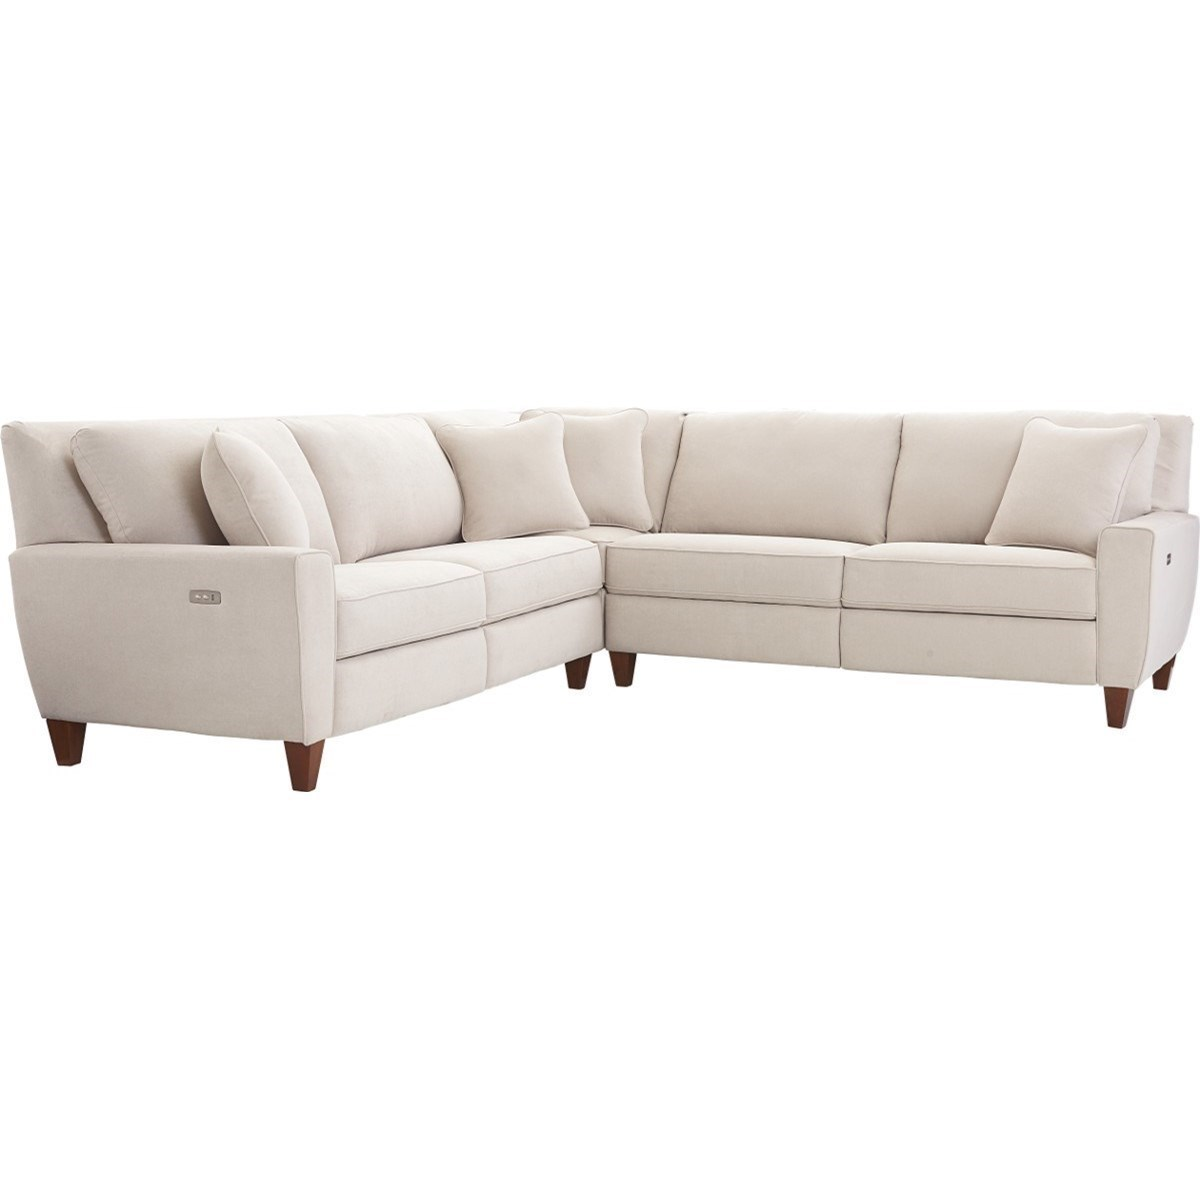 Charmant La Z Boy Edie Three Piece Power Reclining Sectional Sofa With Two Reclining  Chairs